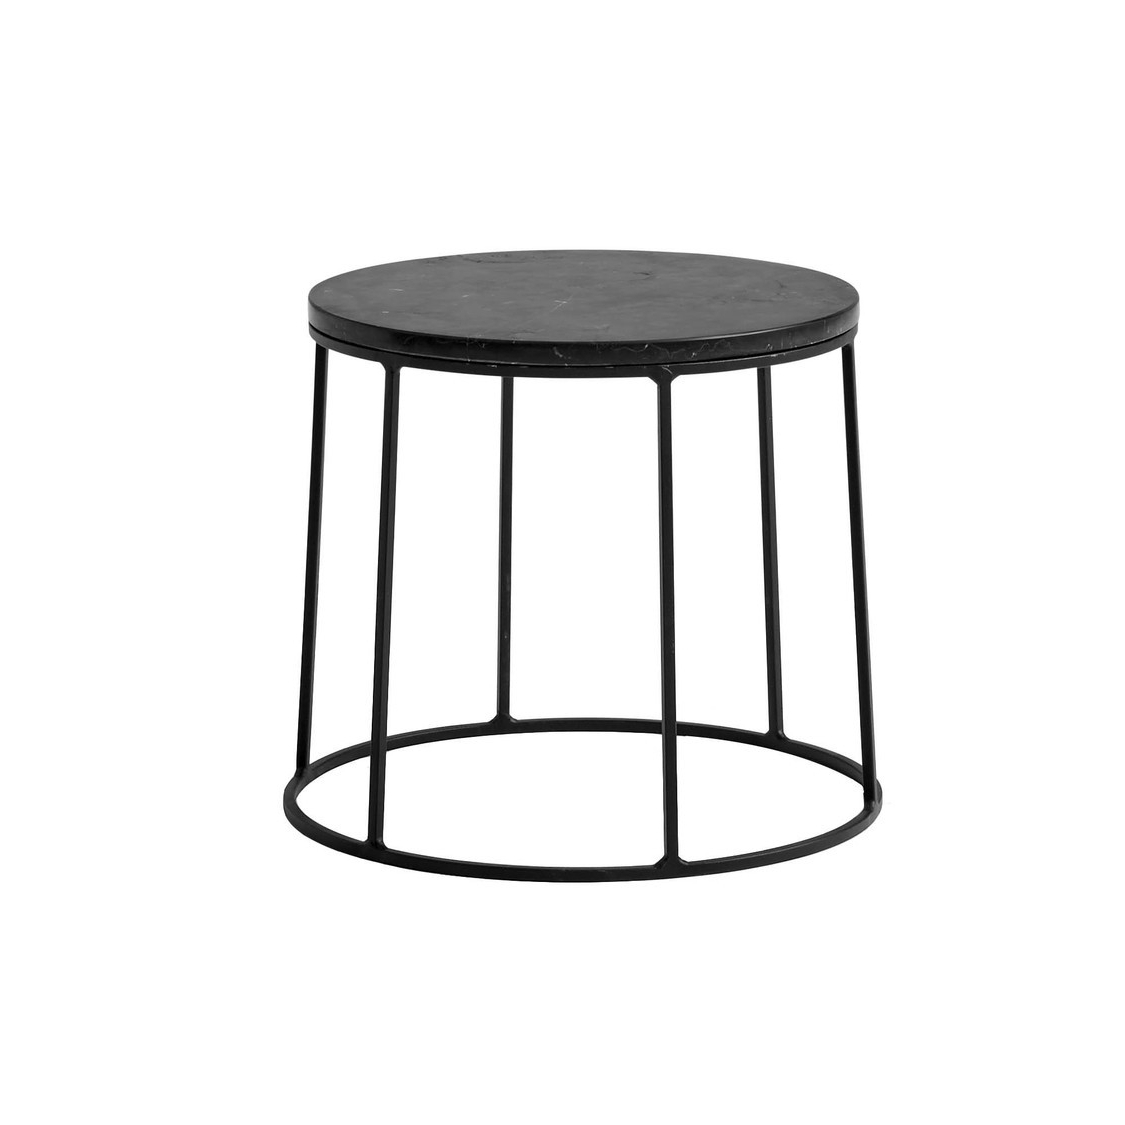 Ambientedirect With Regard To 2018 Black Wire Coffee Tables (Gallery 17 of 20)